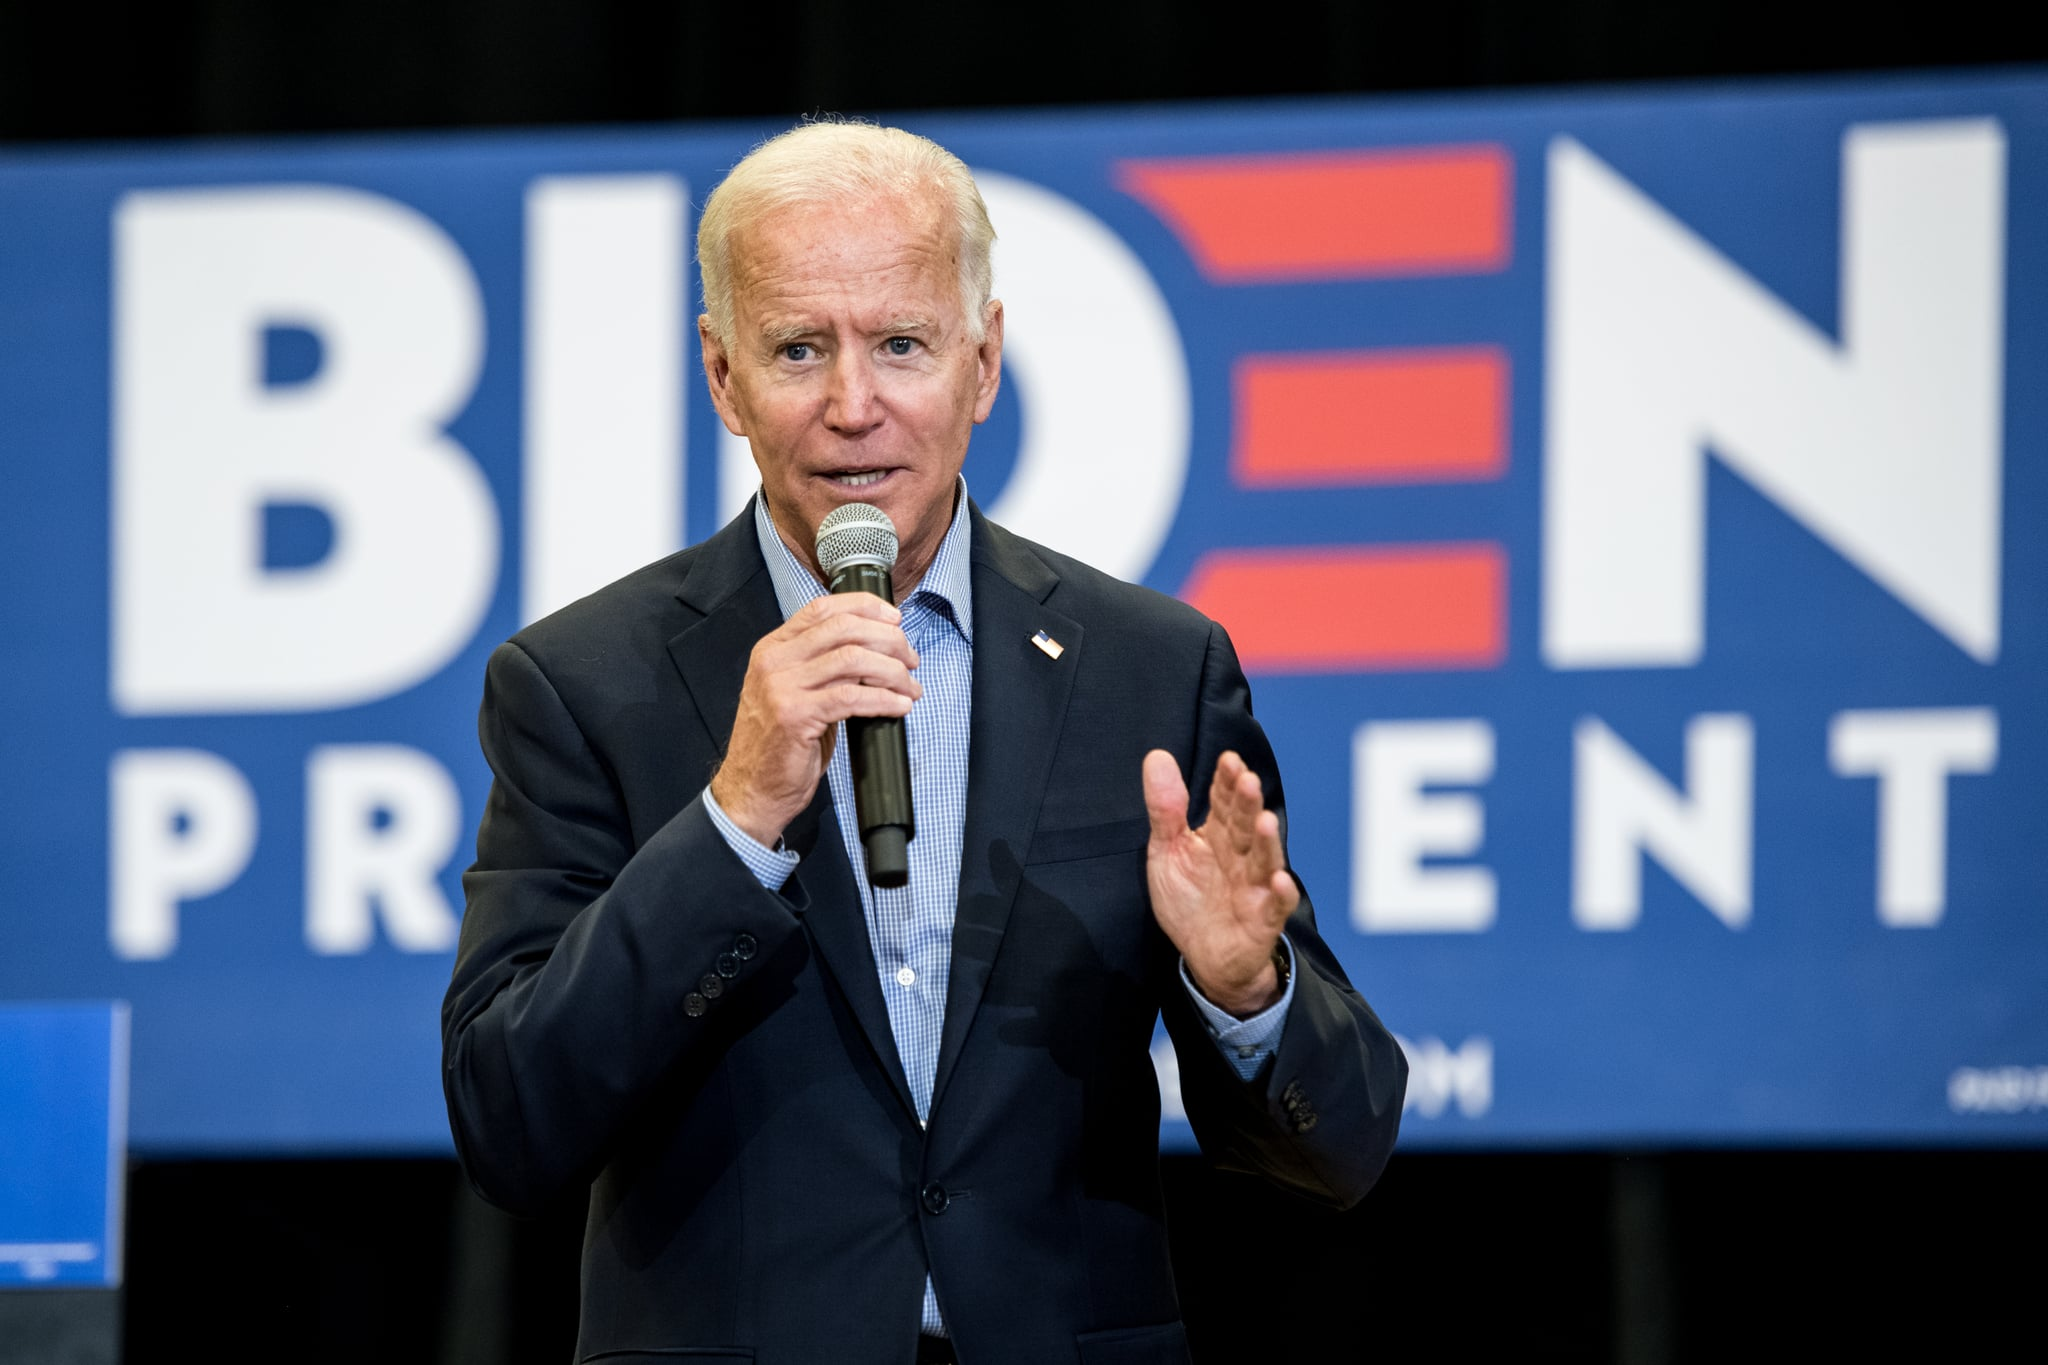 ROCK HILL, SC - AUGUST 29: Democratic presidential candidate and former US Vice President Joe Biden addresses a crowd at a town hall event at Clinton College on August 29, 2019 in Rock Hill, South Carolina. Biden spent Wednesday and Thursday campaigning in the early primary state. (Photo by Sean Rayford/Getty Images)